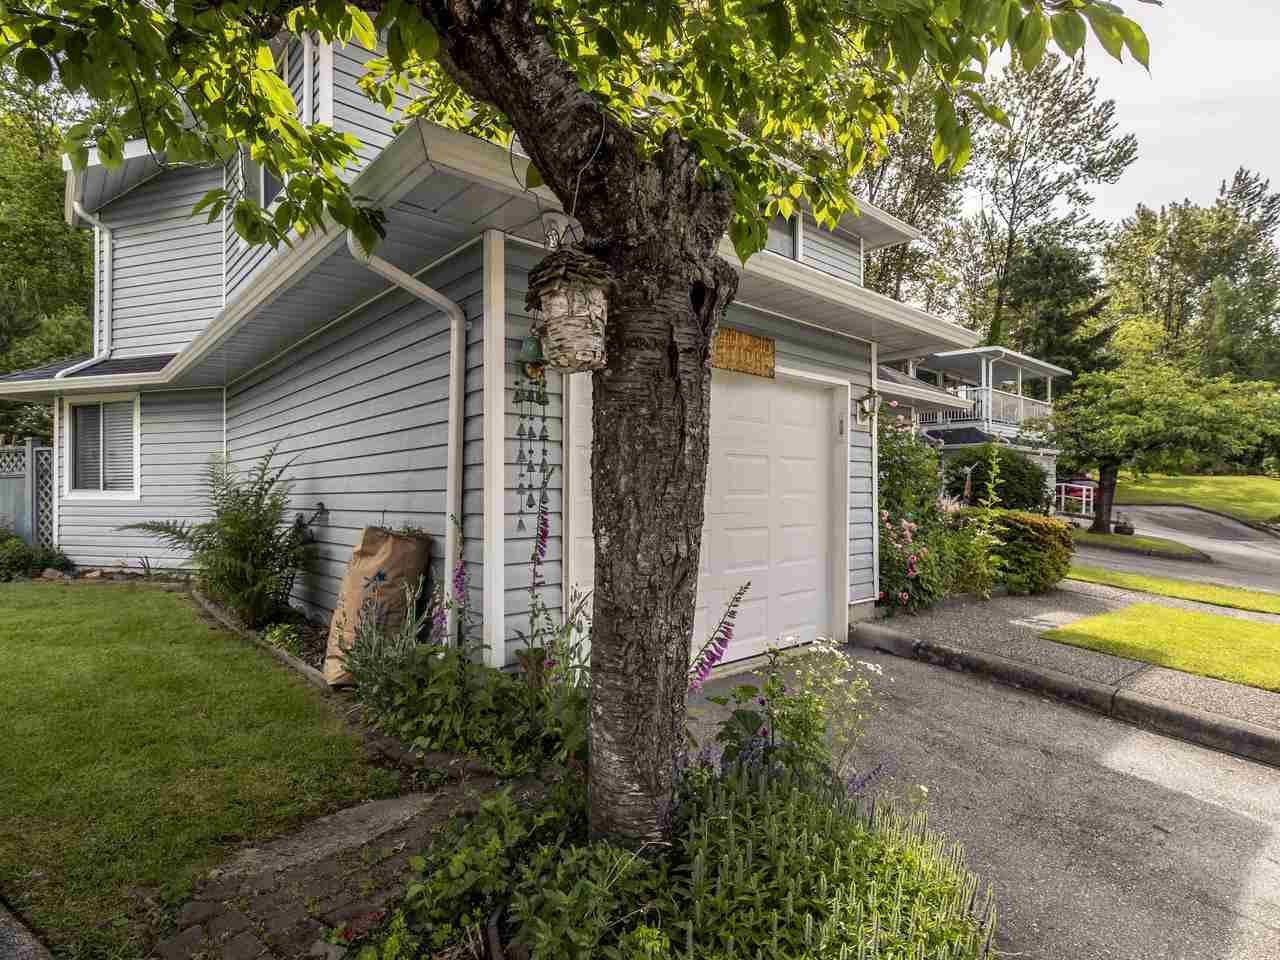 """Photo 3: Photos: 127 22555 116 Avenue in Maple Ridge: East Central Townhouse for sale in """"HILLSIDE"""" : MLS®# R2493046"""